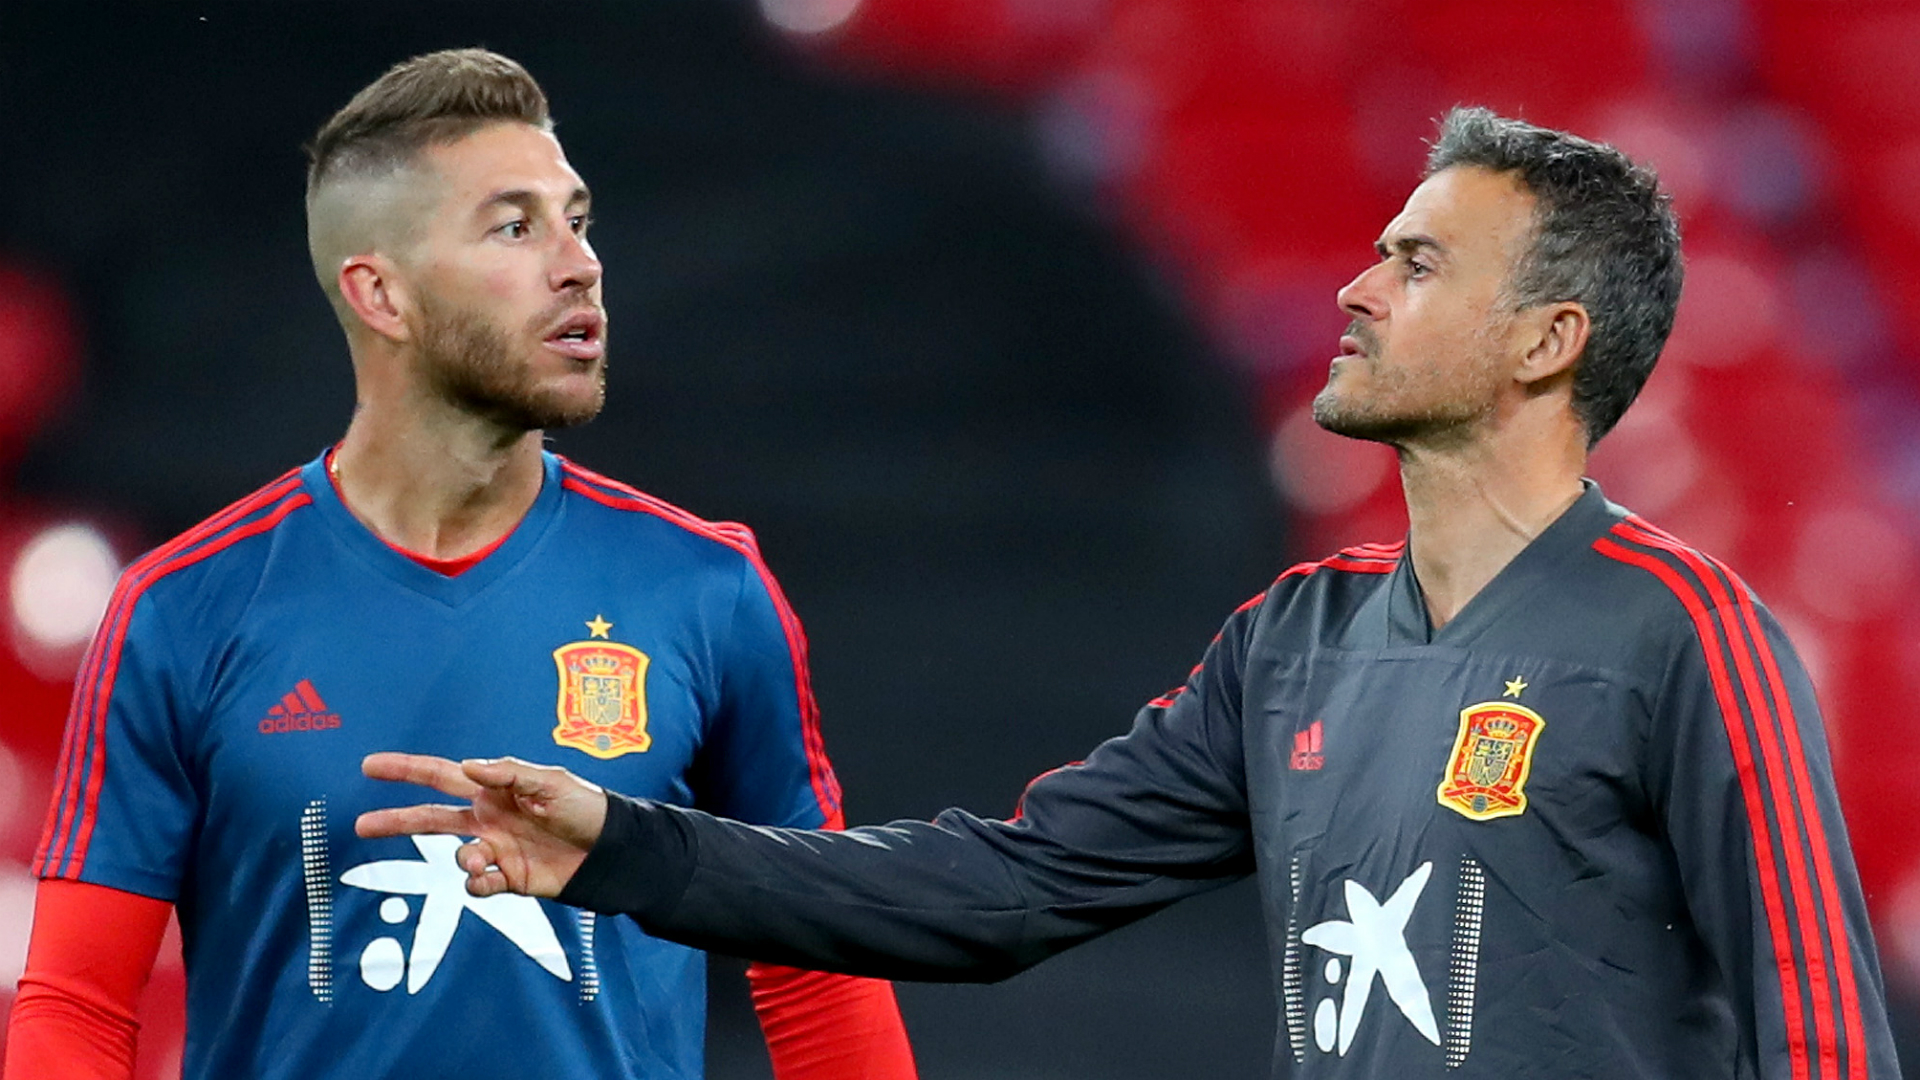 Every win will be yours – Spain captain Ramos pays tribute to Luis Enrique